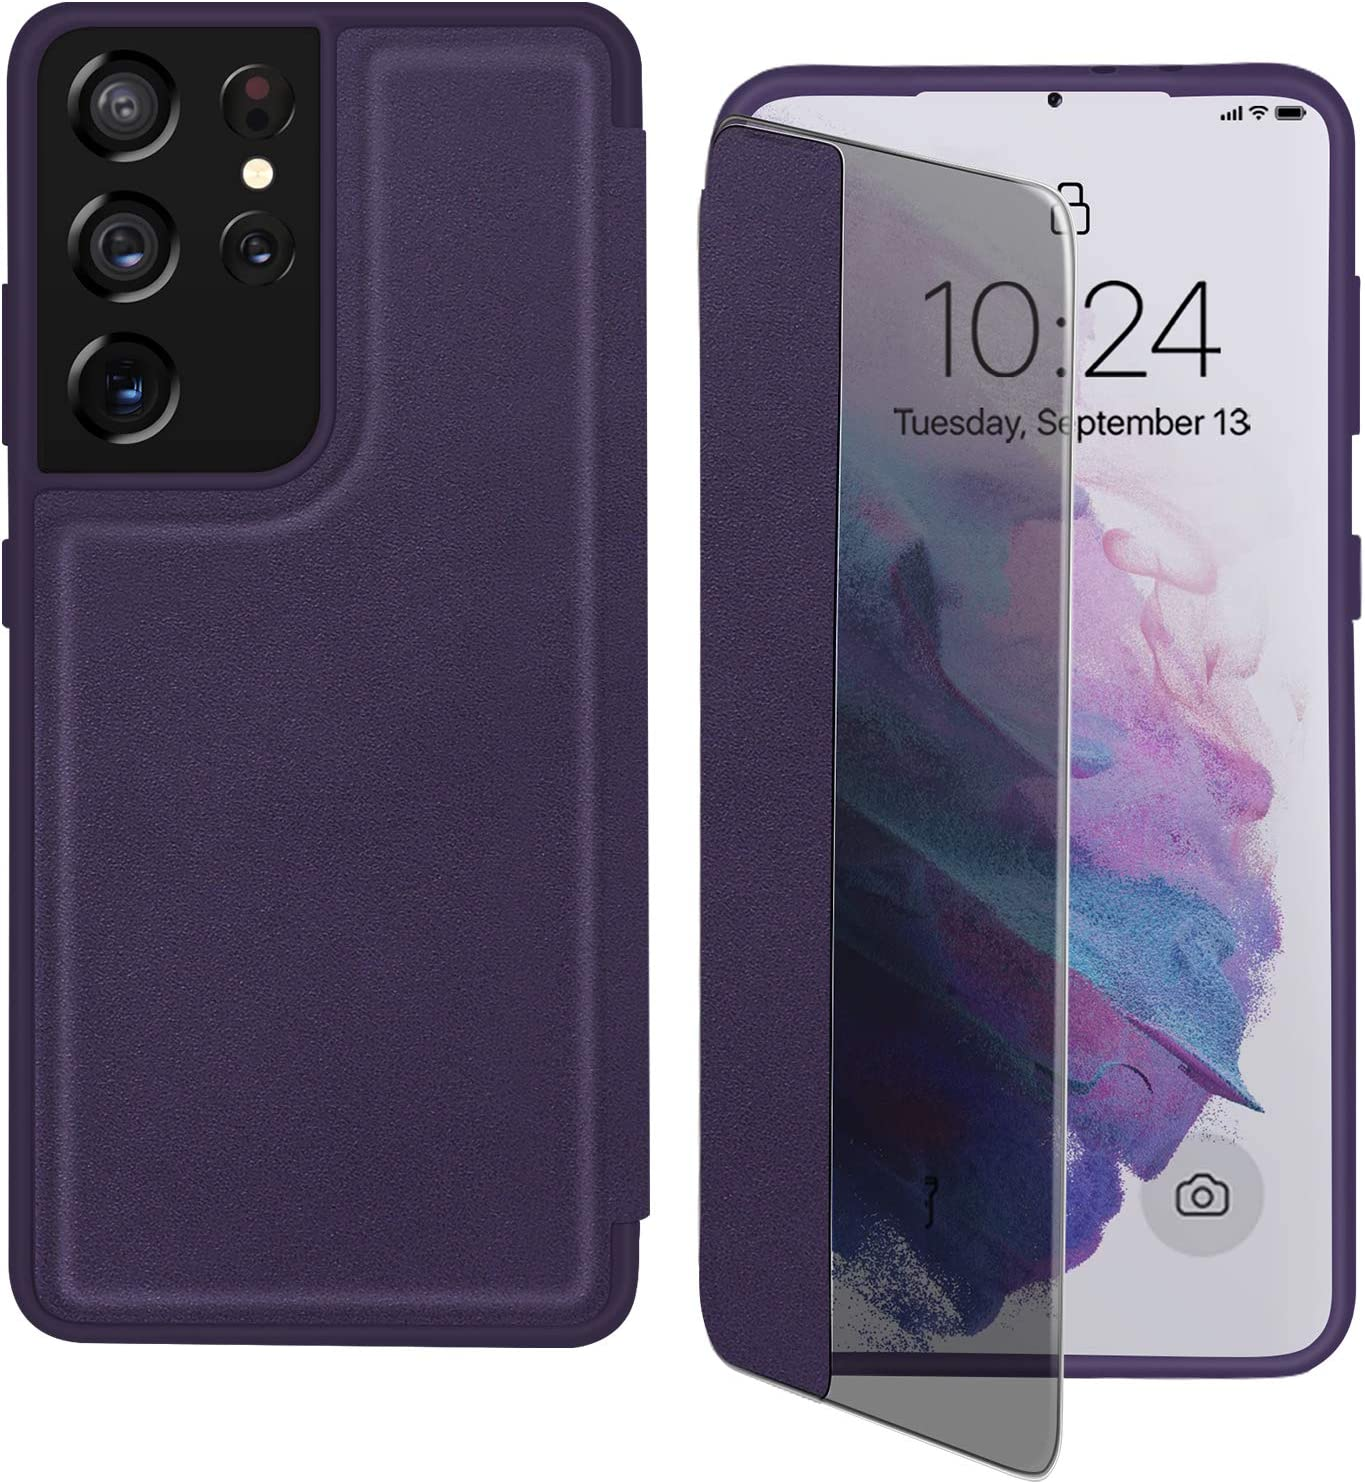 """FYY Phone Case for Samsung Galaxy S21 Ultra 5G 6.8"""", Magnetic Slim Flip Case Drop Protection Shockproof Protective Cover with Window View Function for Samsung Galaxy S21 Ultra 6.8 inch Purple"""